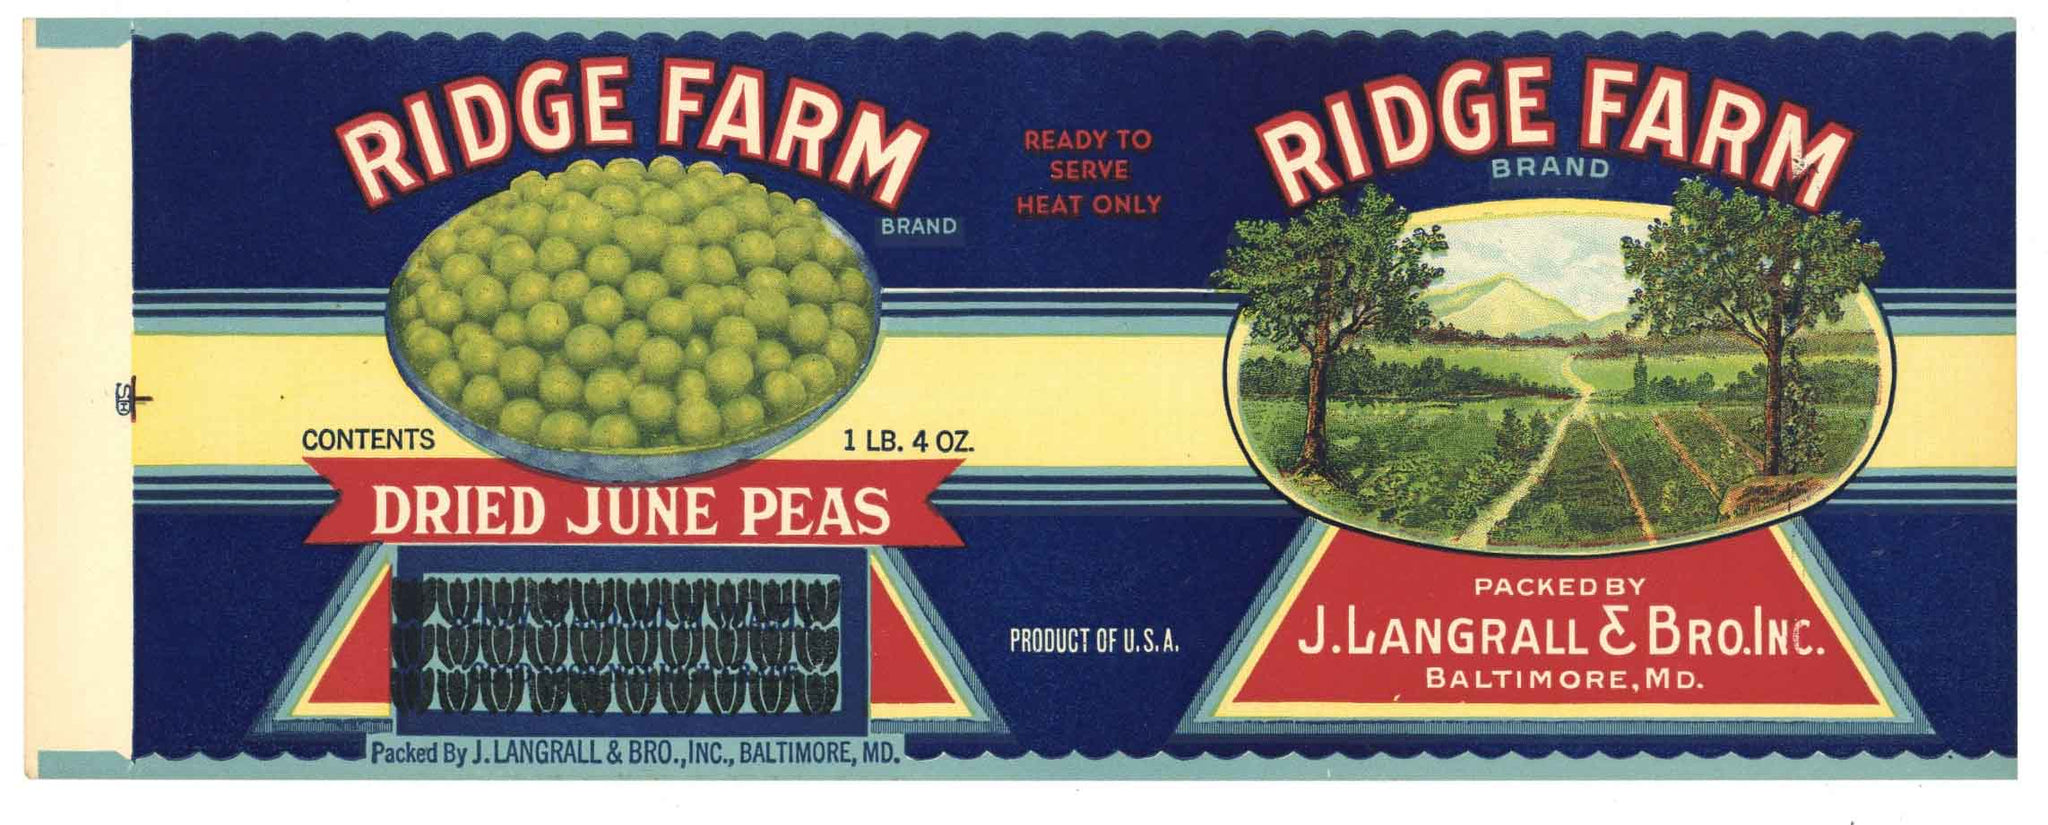 Ridge Farm Brand Vintage Baltimore Maryland Peas Can Label